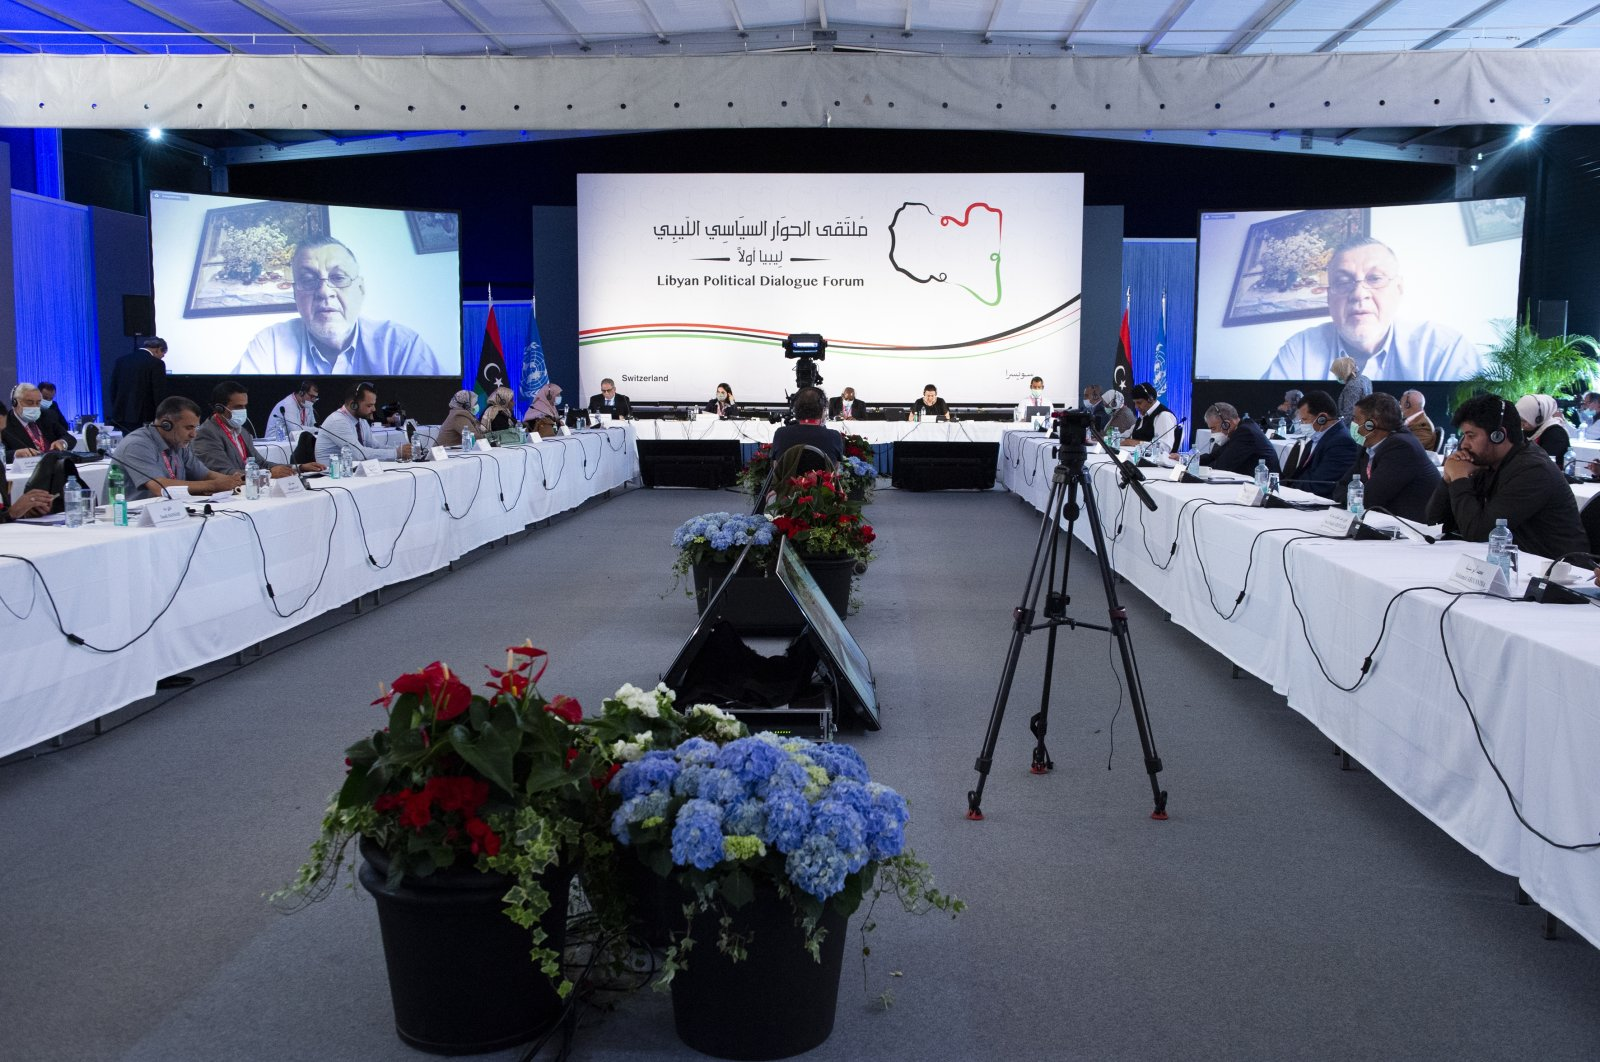 A session of the Libyan Political Dialogue Forum in Geneva, Switzerland, July 2, 2021. (AA Photo)